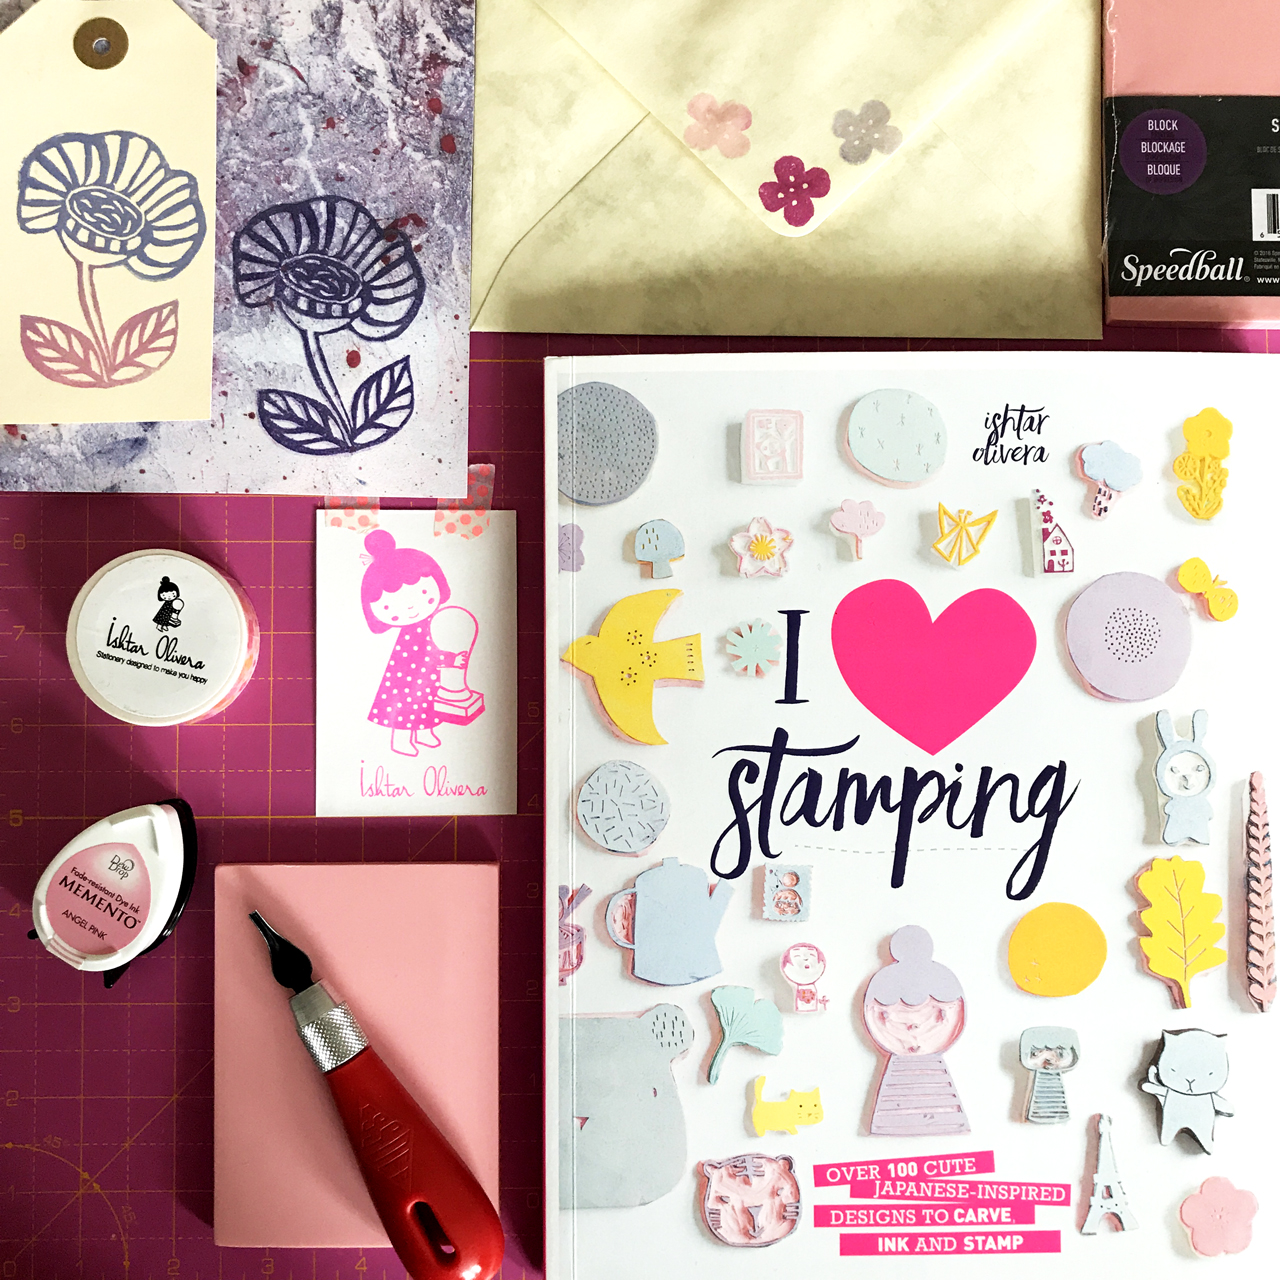 Stamps inspired by Ishtar Olivera's book, 'I Love Stamping'